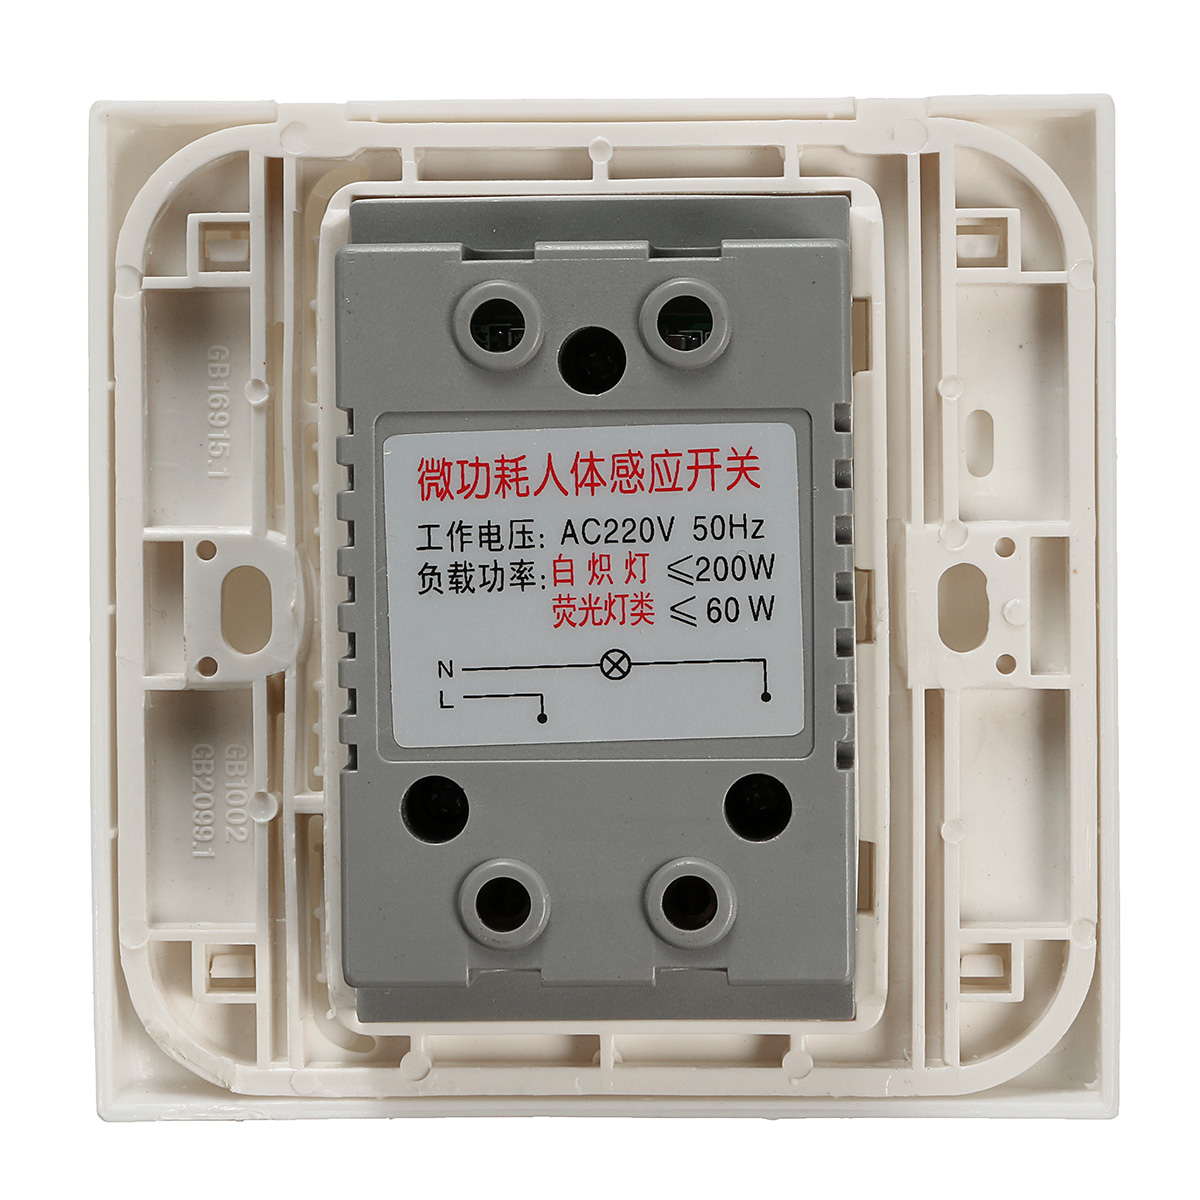 220V Wall Plate Infrared PIR Body Motion Sensor Sound Auto Lamp Switch